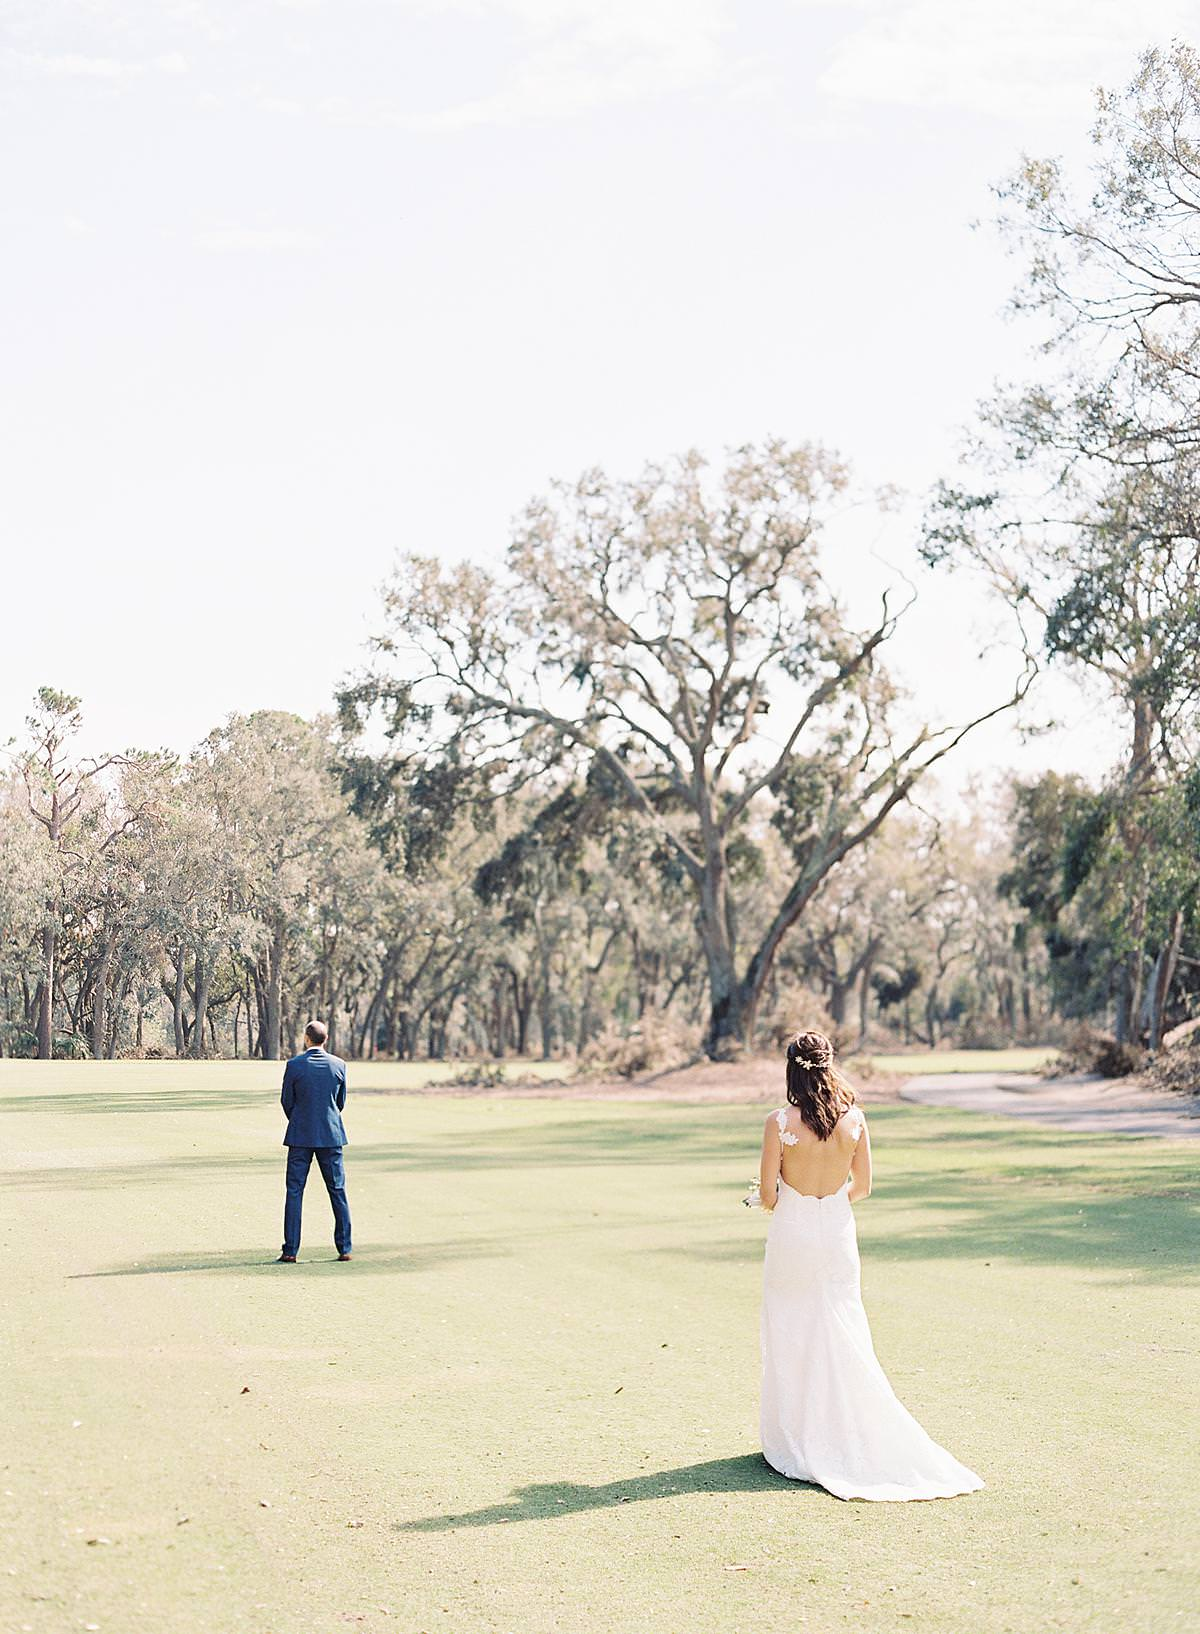 hilton head bride walking to groom